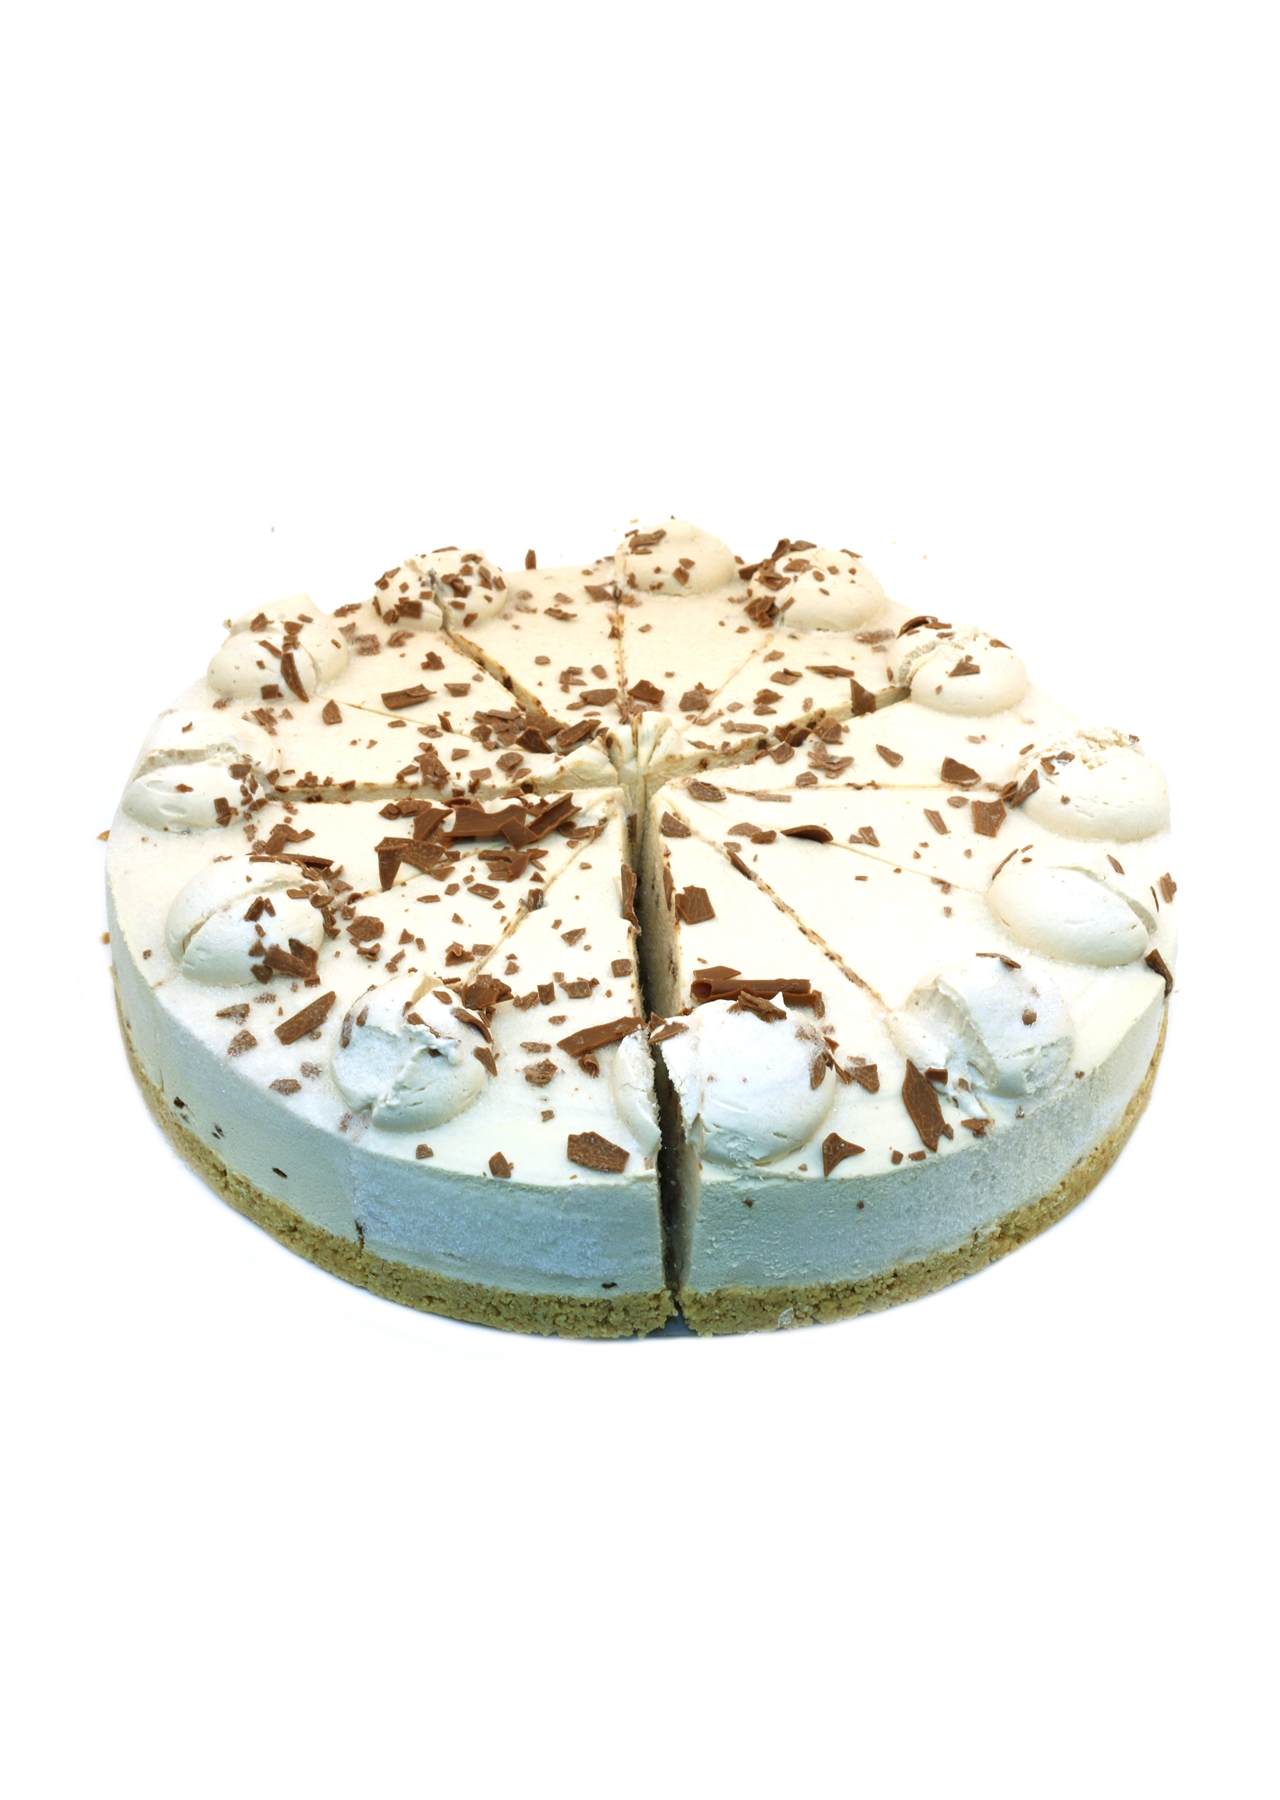 Whole Baileys Cheesecake 12 slices 1500g